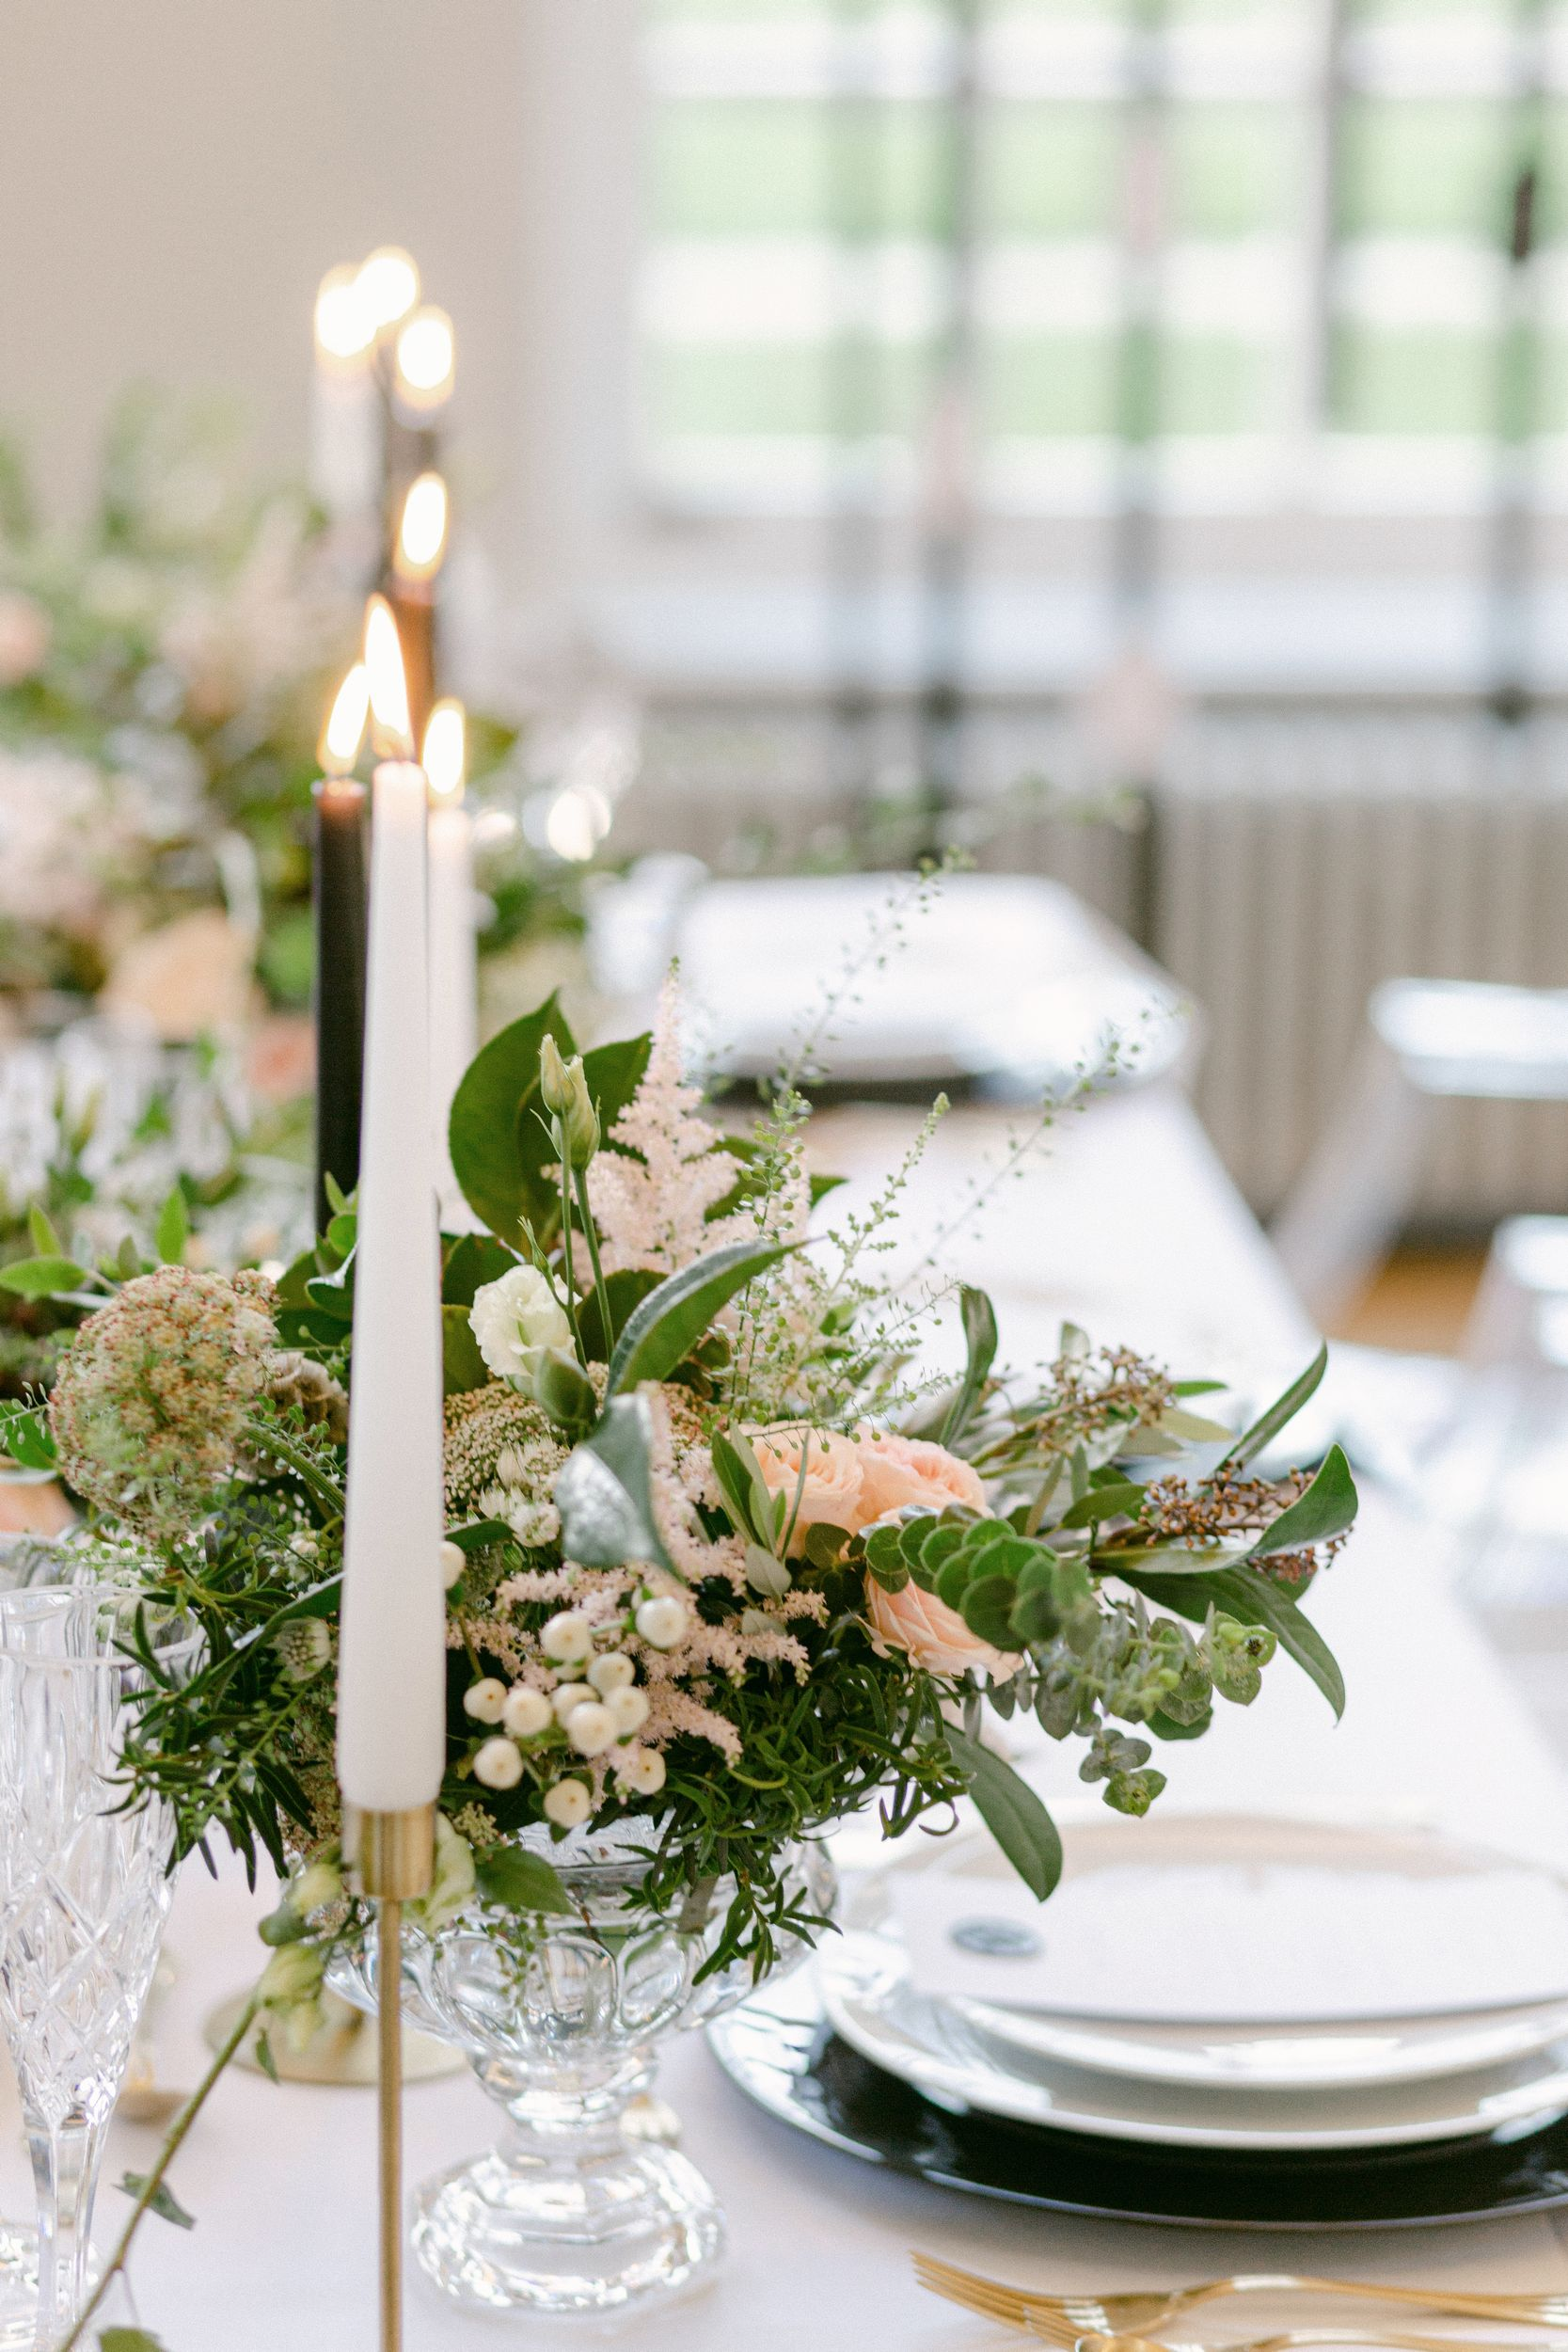 lit candles on a wedding table with green and white flowers Wedding table bouquet designed by Amie Jackson - modern wedding planner surrey